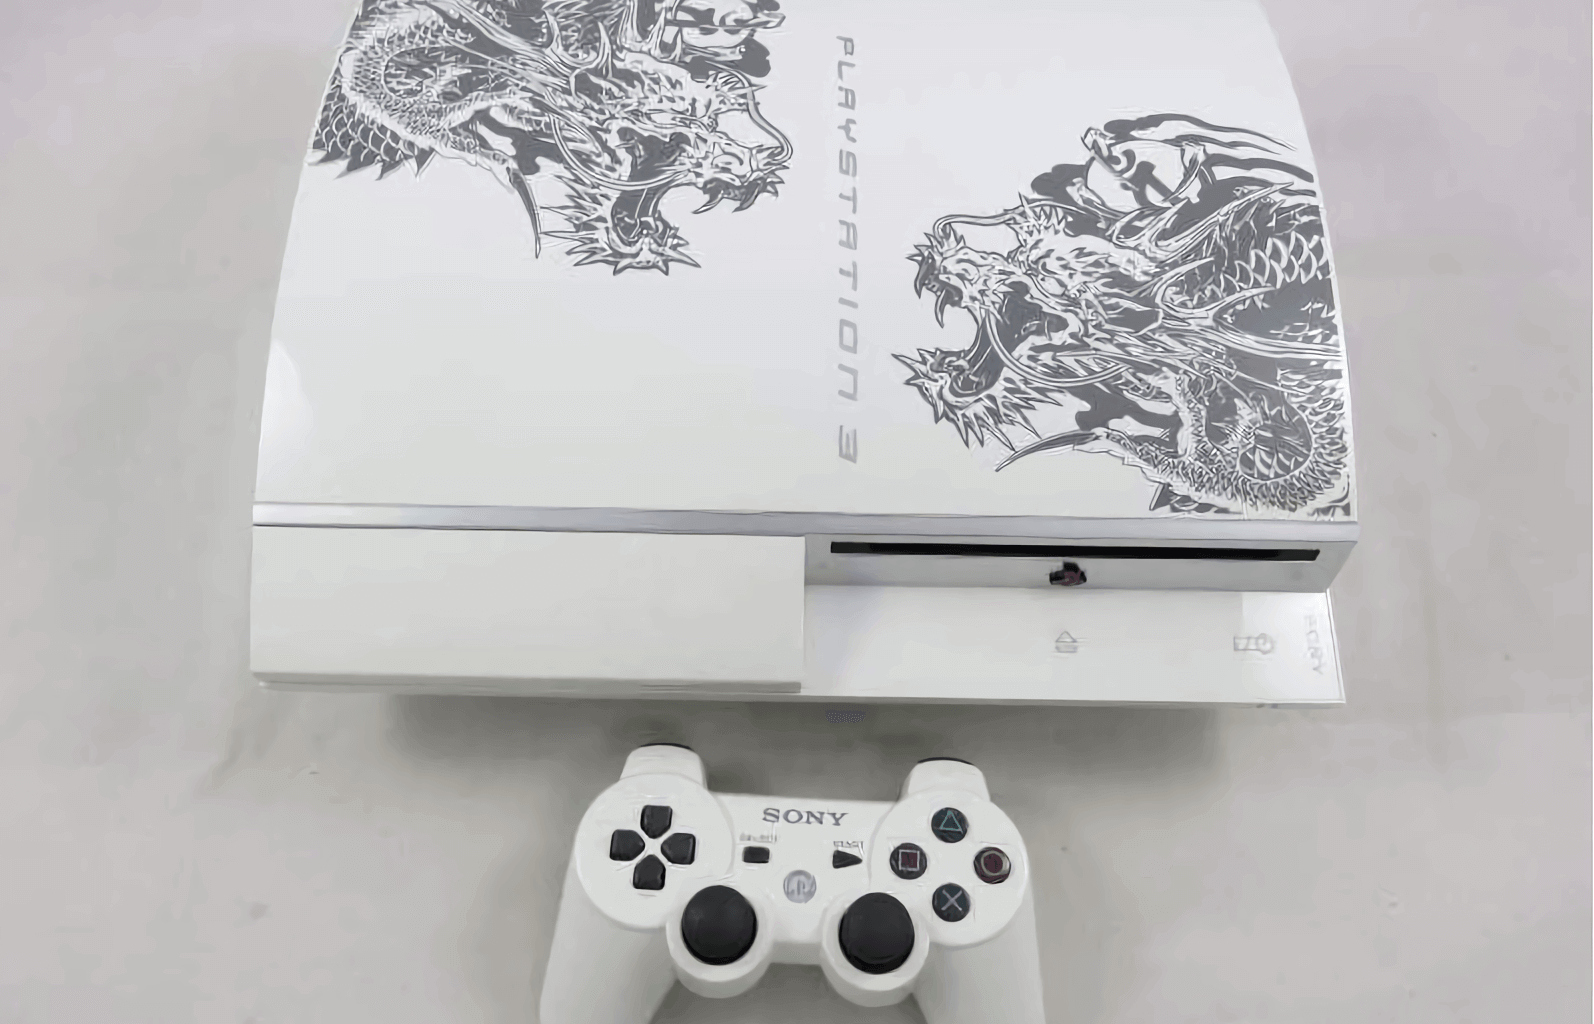 Man Arrested in Japan for selling modded PS3